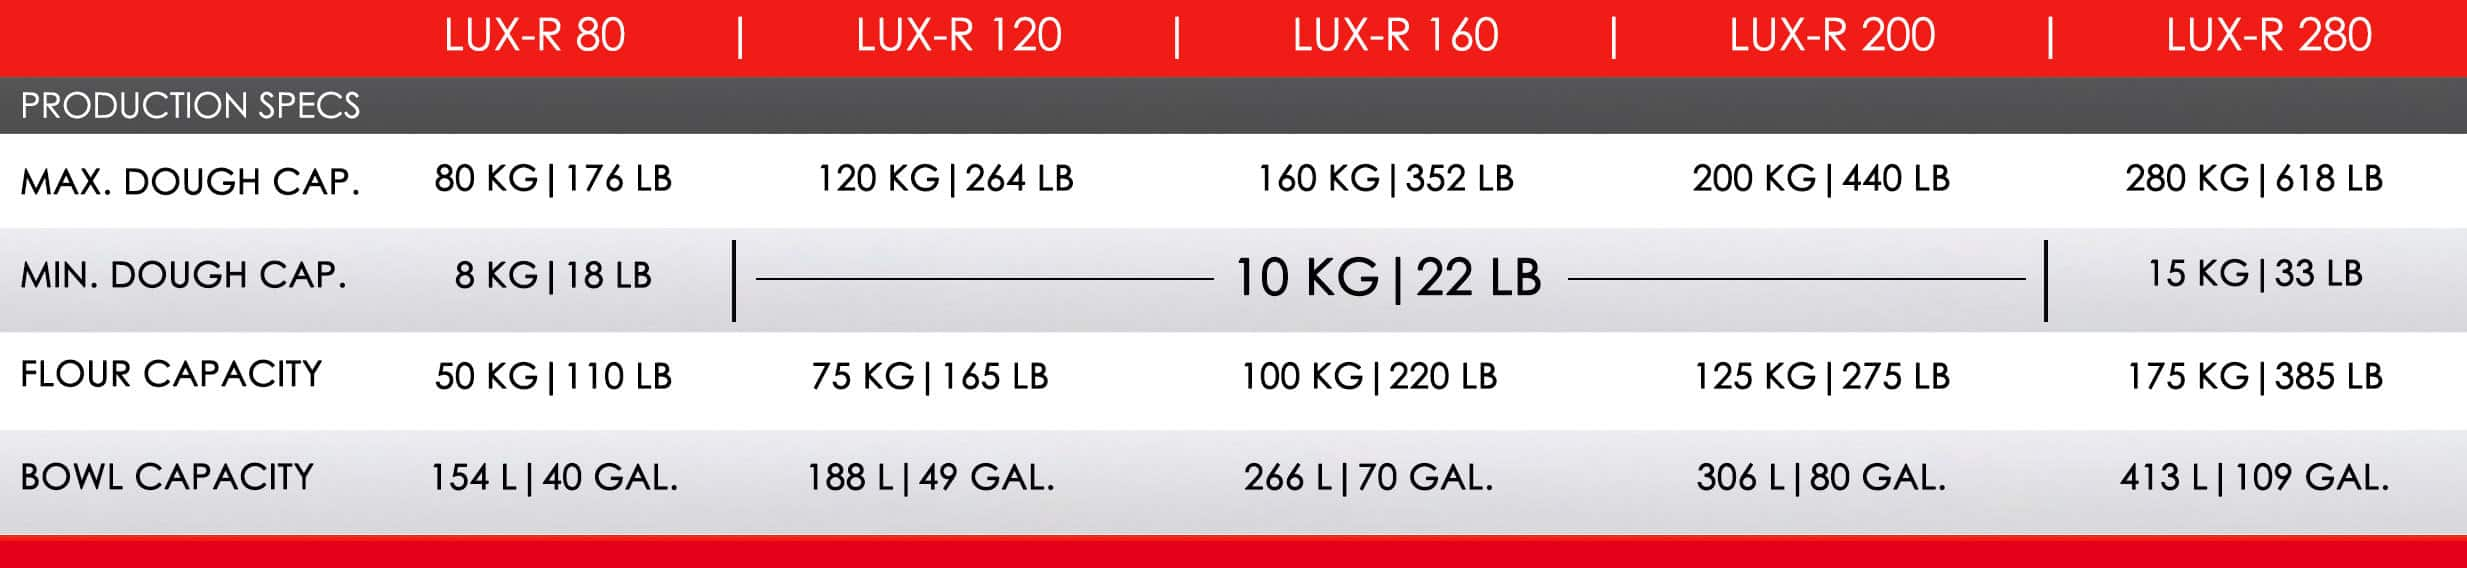 LUX-R Series Production Specifications